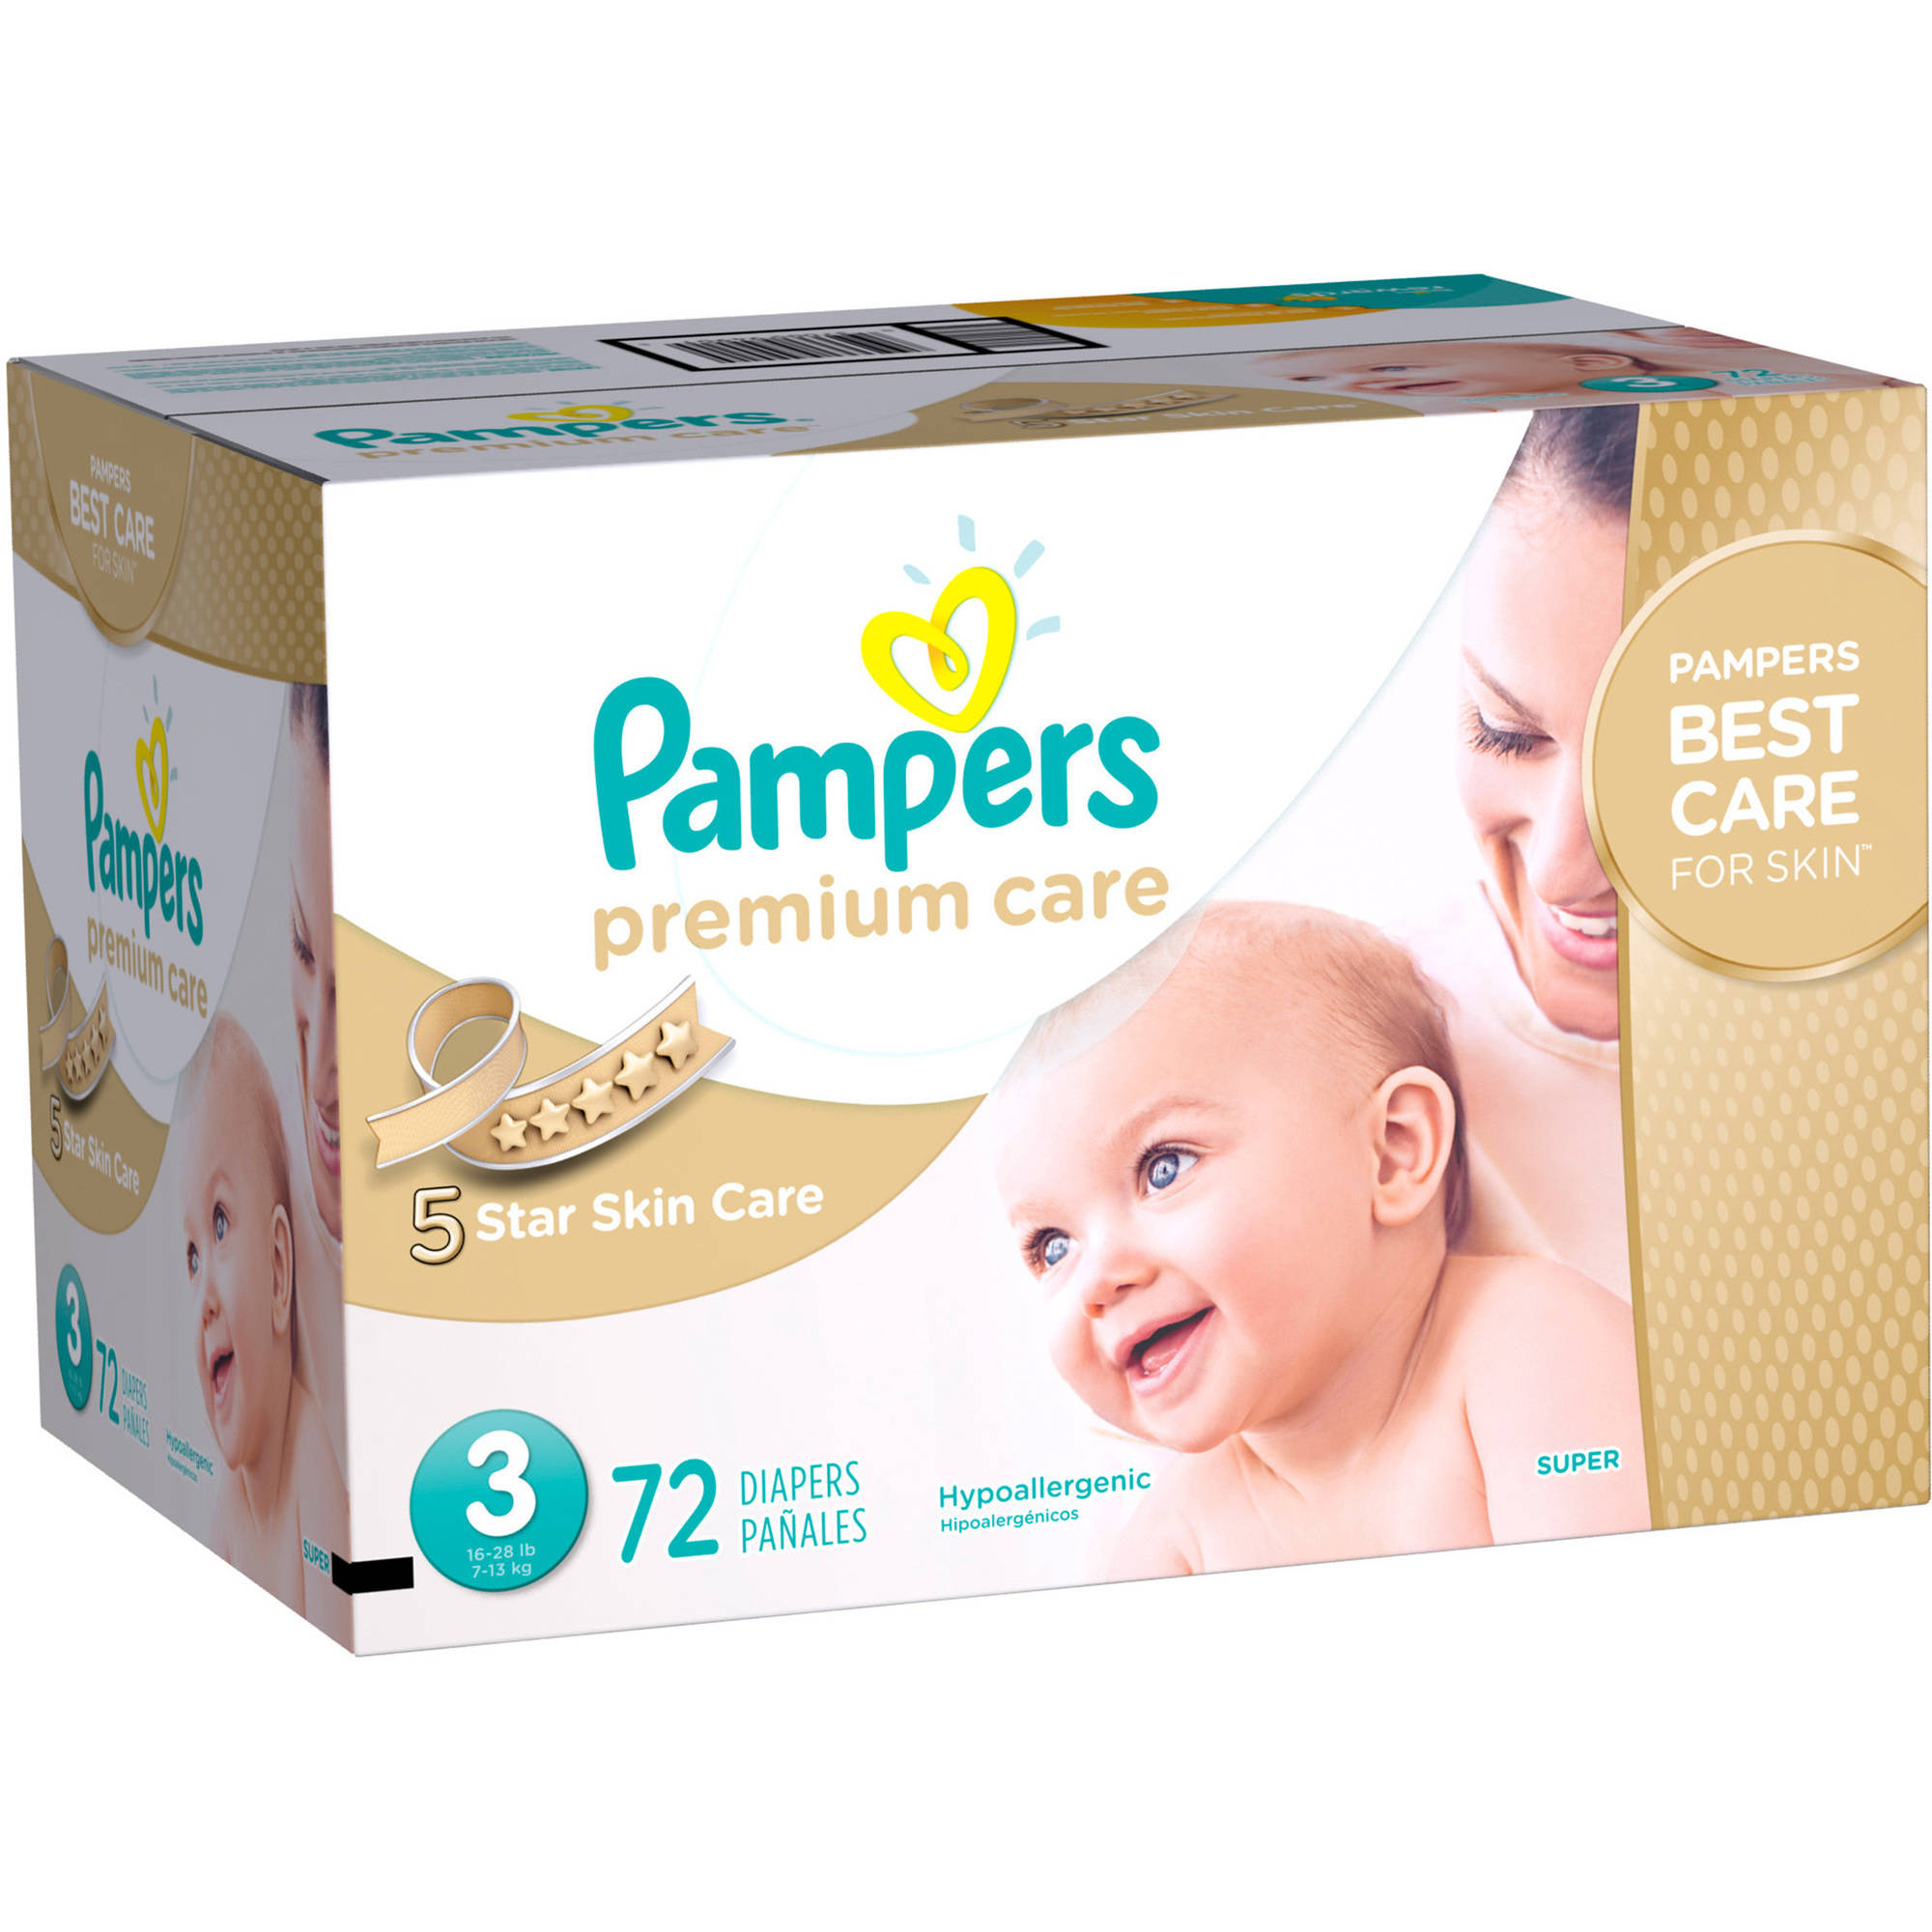 Pampers Premium Care Diapers, Size 3, 72 Diapers